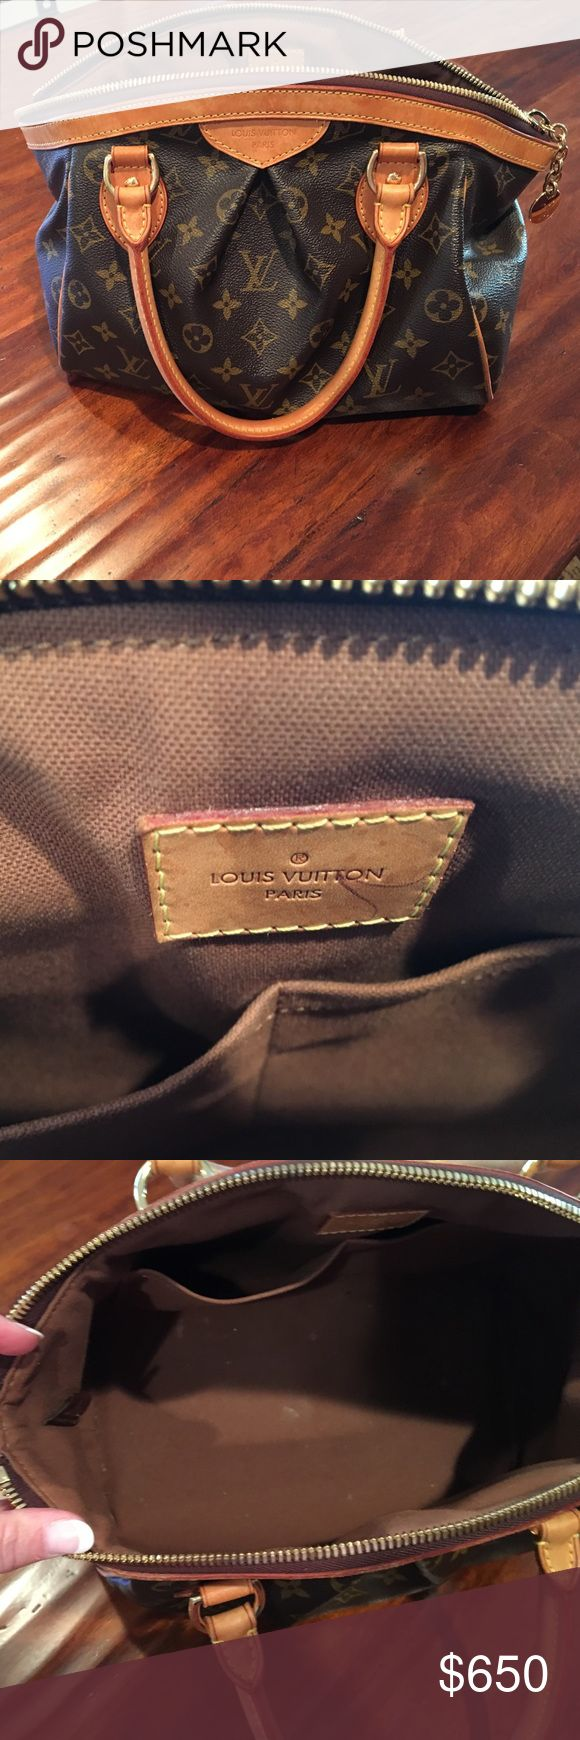 Louis Vuitton Handbag Beautiful bag, gently worn, great for every event and perfect size Louis Vuitton Bags